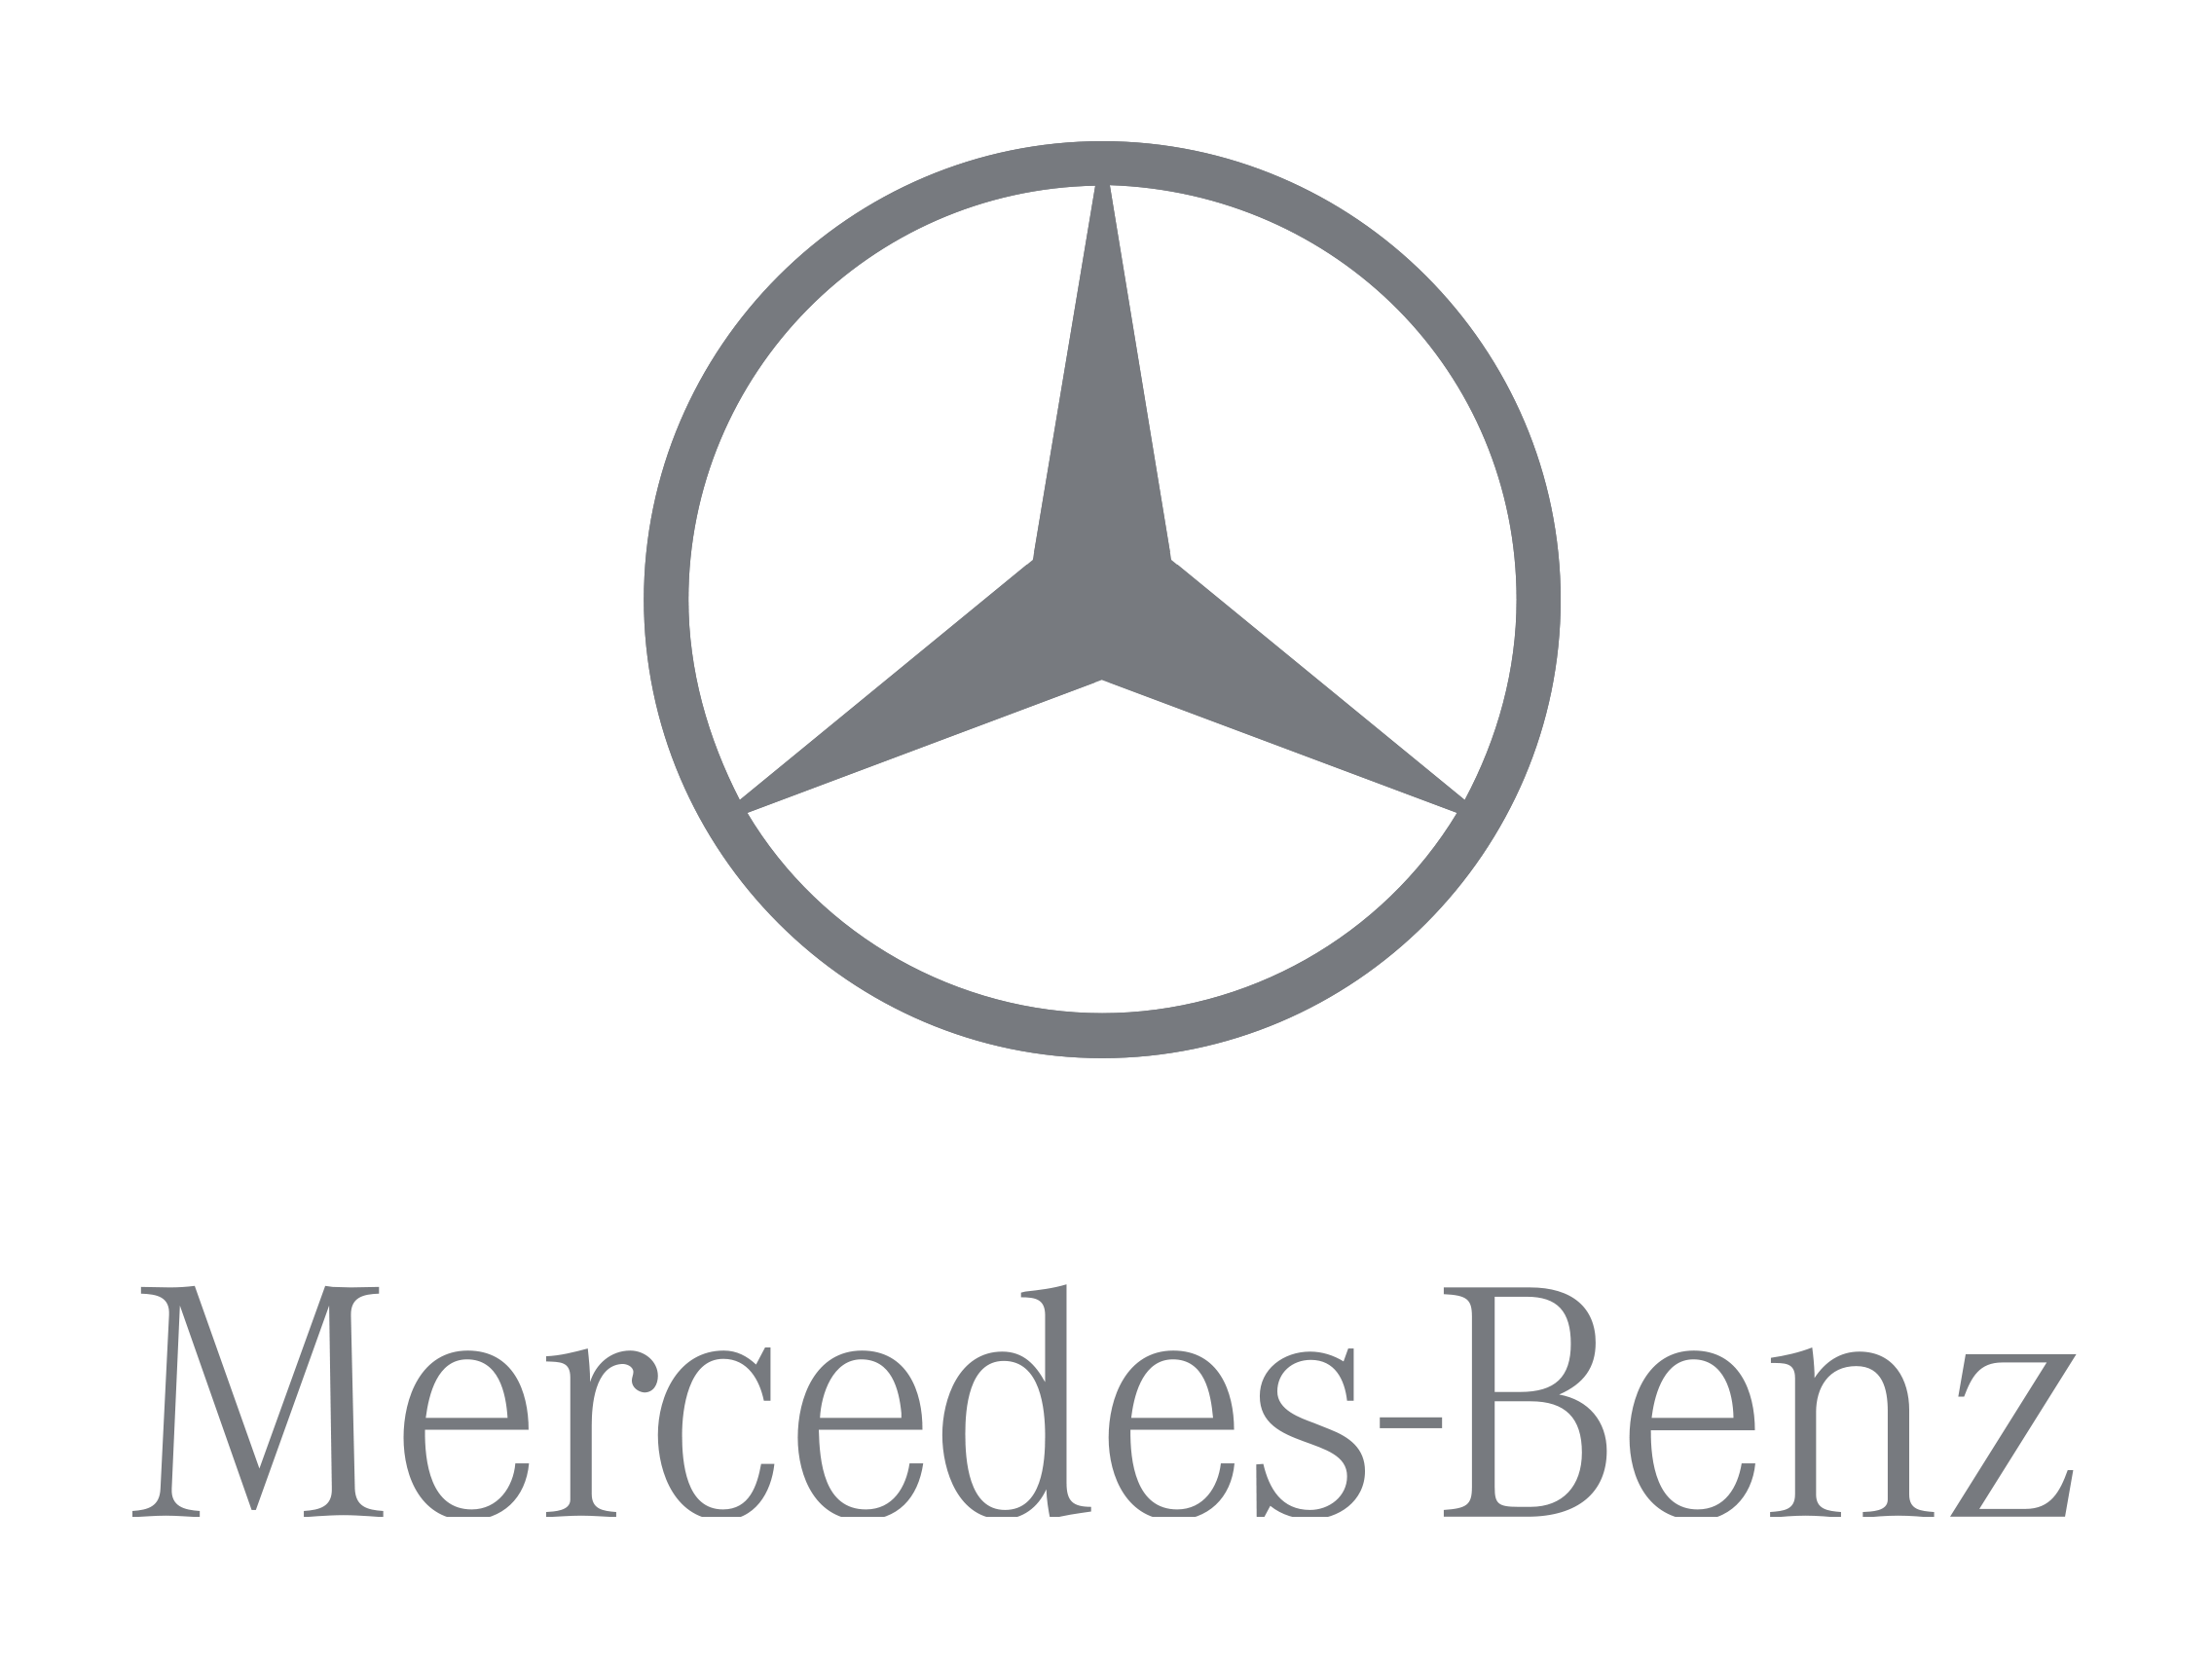 Mercedes-Benz (pl)